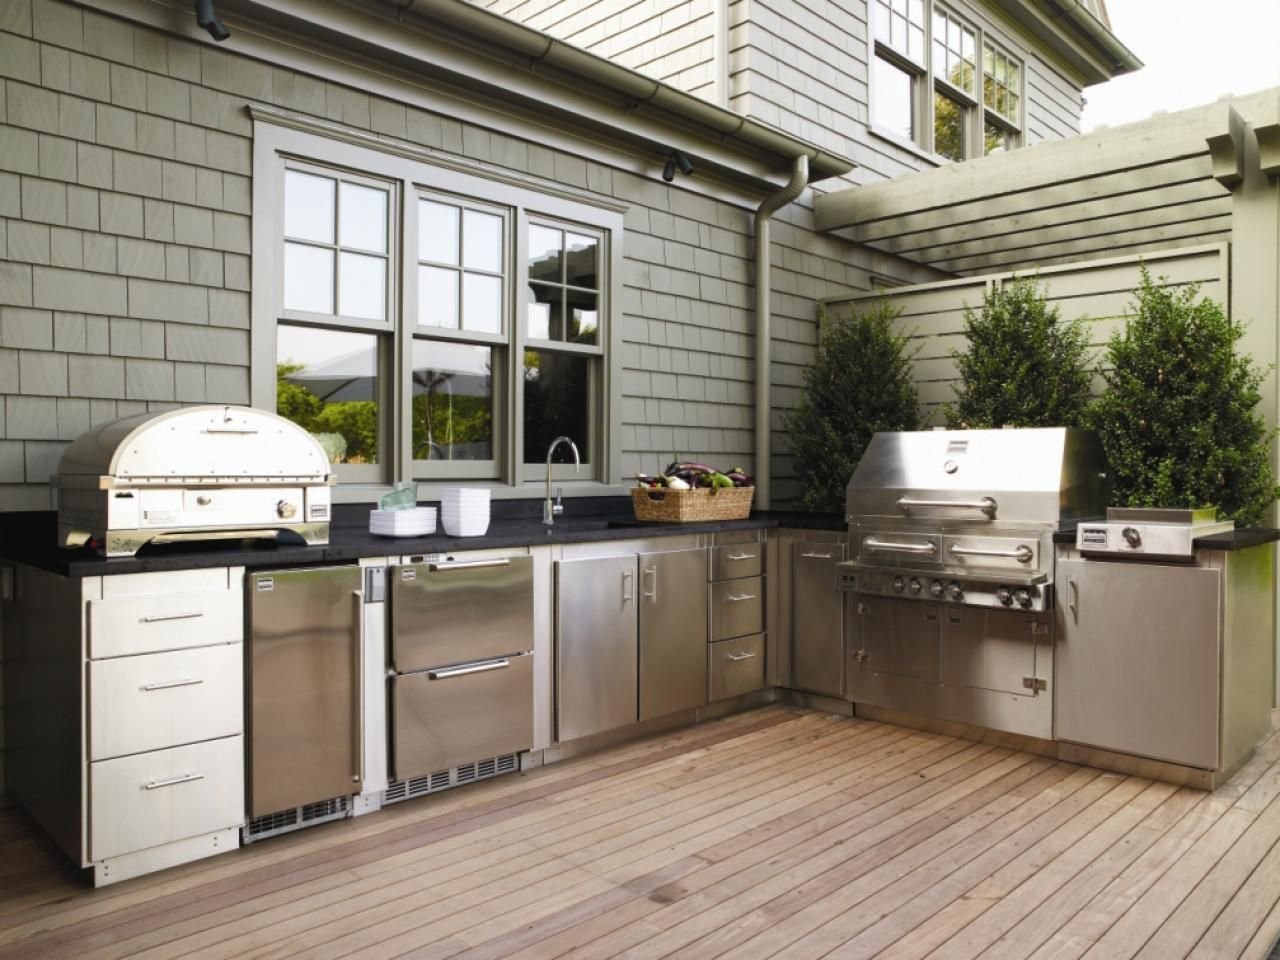 Outdoor Kitchen Ideas on a Budget: Pictures, Tips & Ideas | Outdoor ...